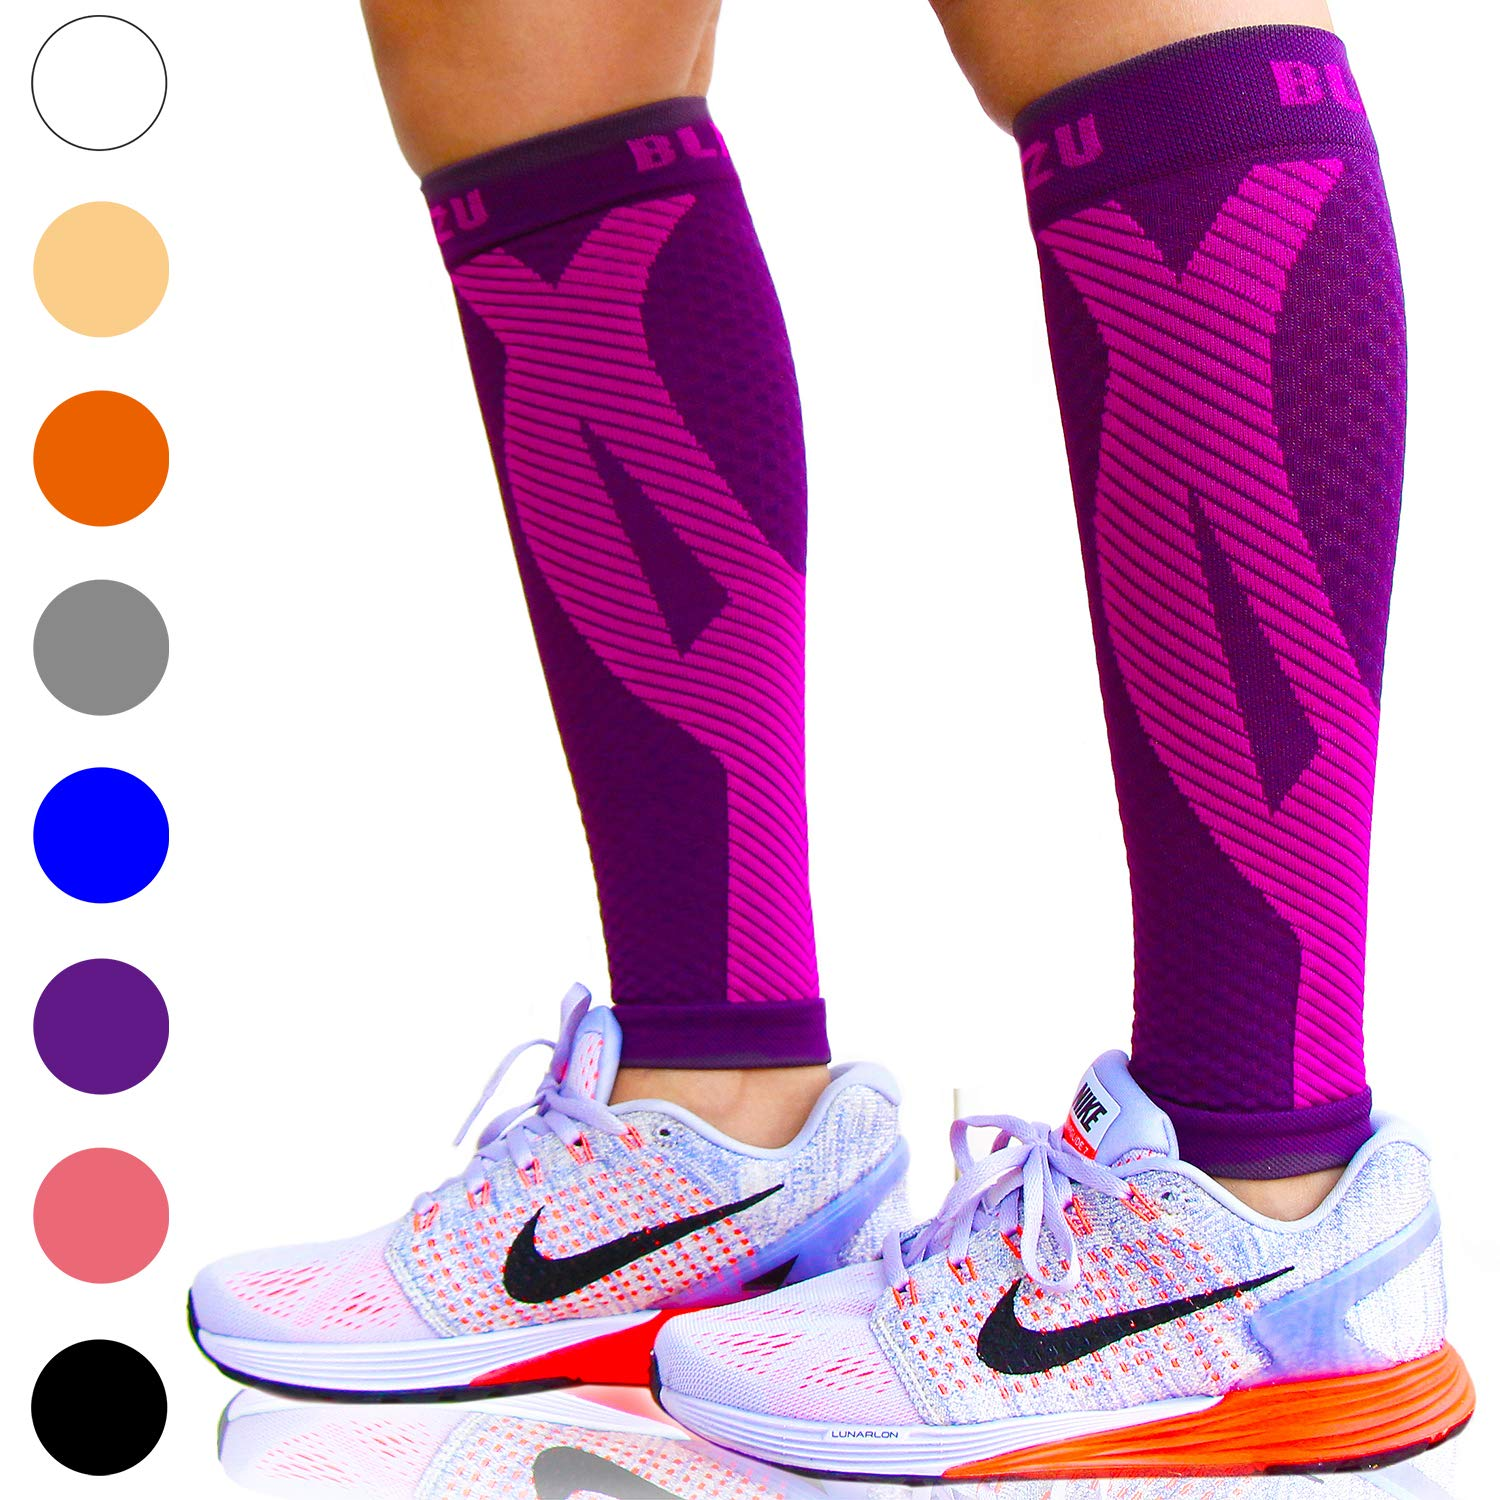 BLITZU Calf Compression Sleeve One Pair Leg Performance Support for Shin Splint & Calf Pain Relief. Men Women Runners Guards Sleeves for Running. Improves Circulation and Recovery Purple S/M by BLITZU